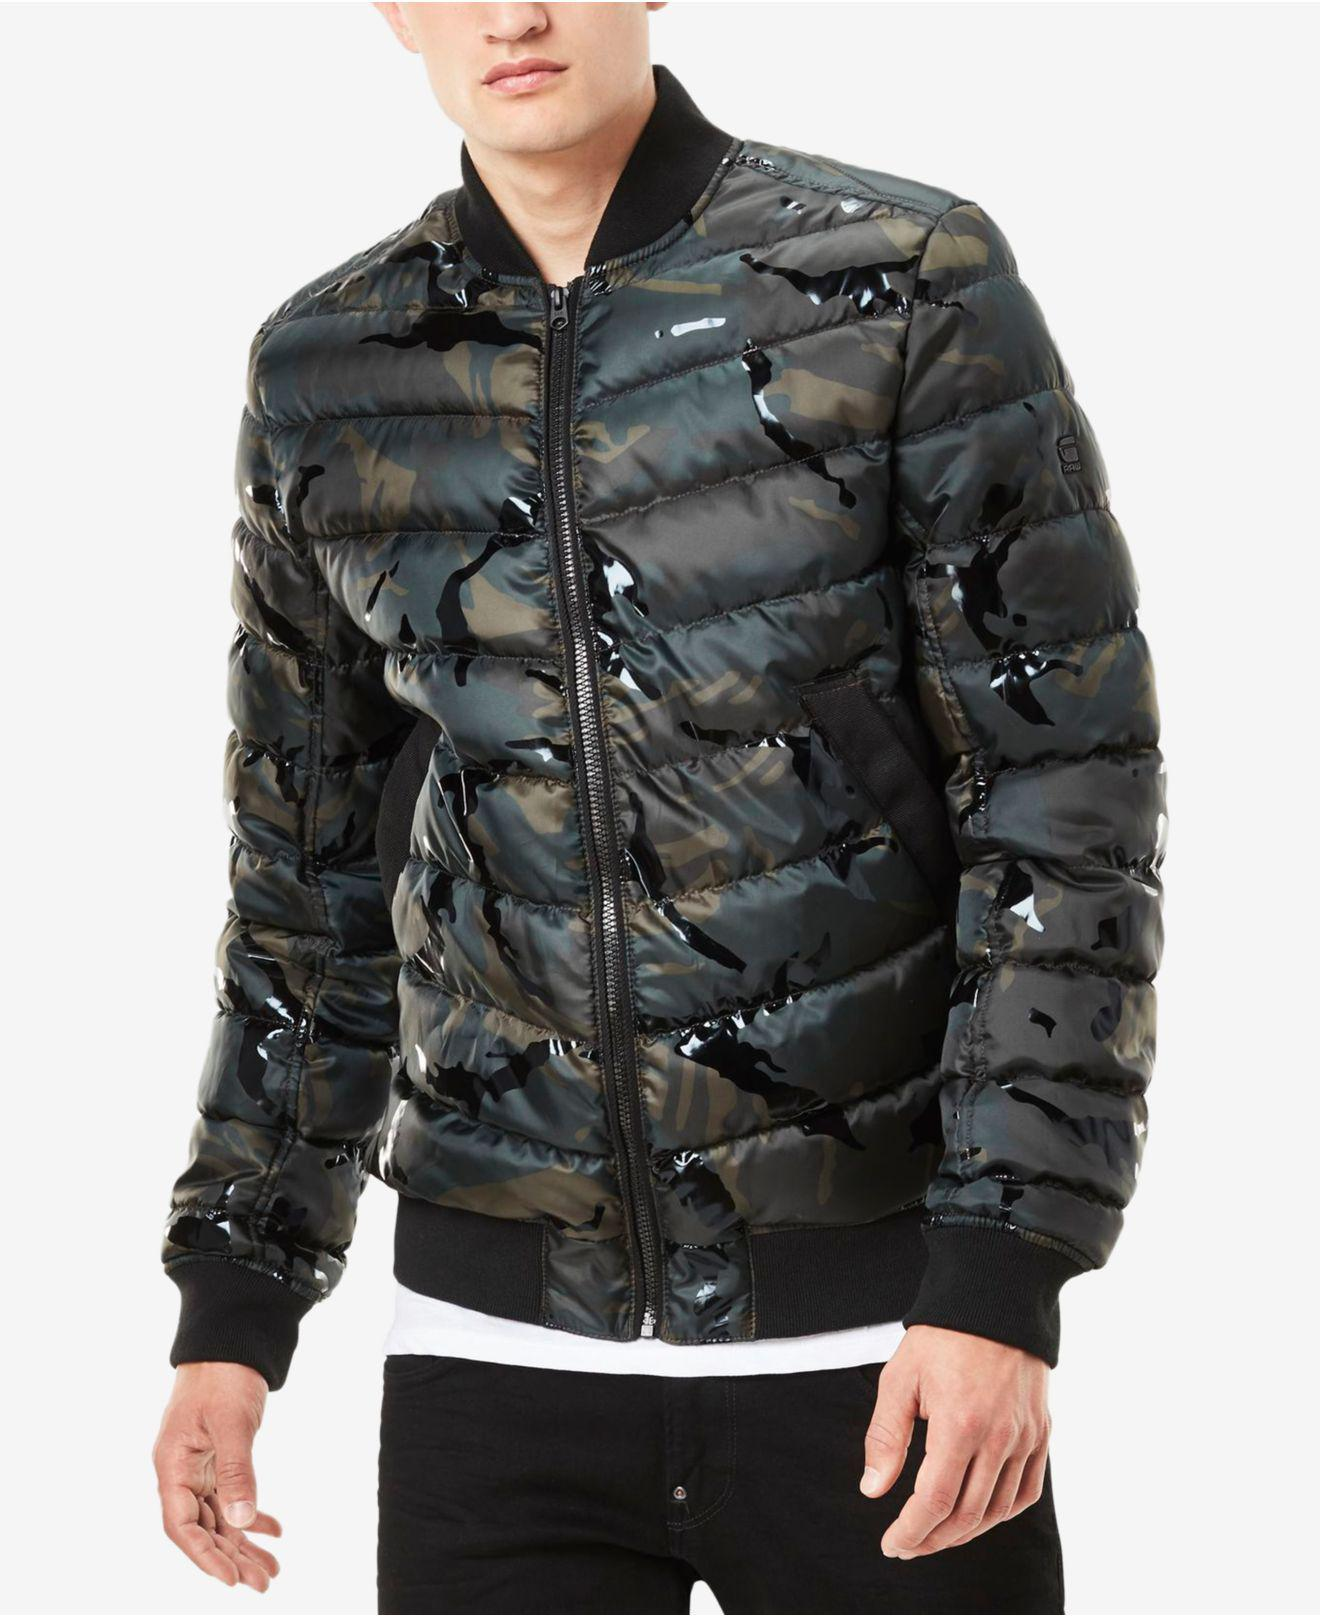 g star raw men 39 s meefic quilted camouflage overshirt bomber jacket in black for men lyst. Black Bedroom Furniture Sets. Home Design Ideas